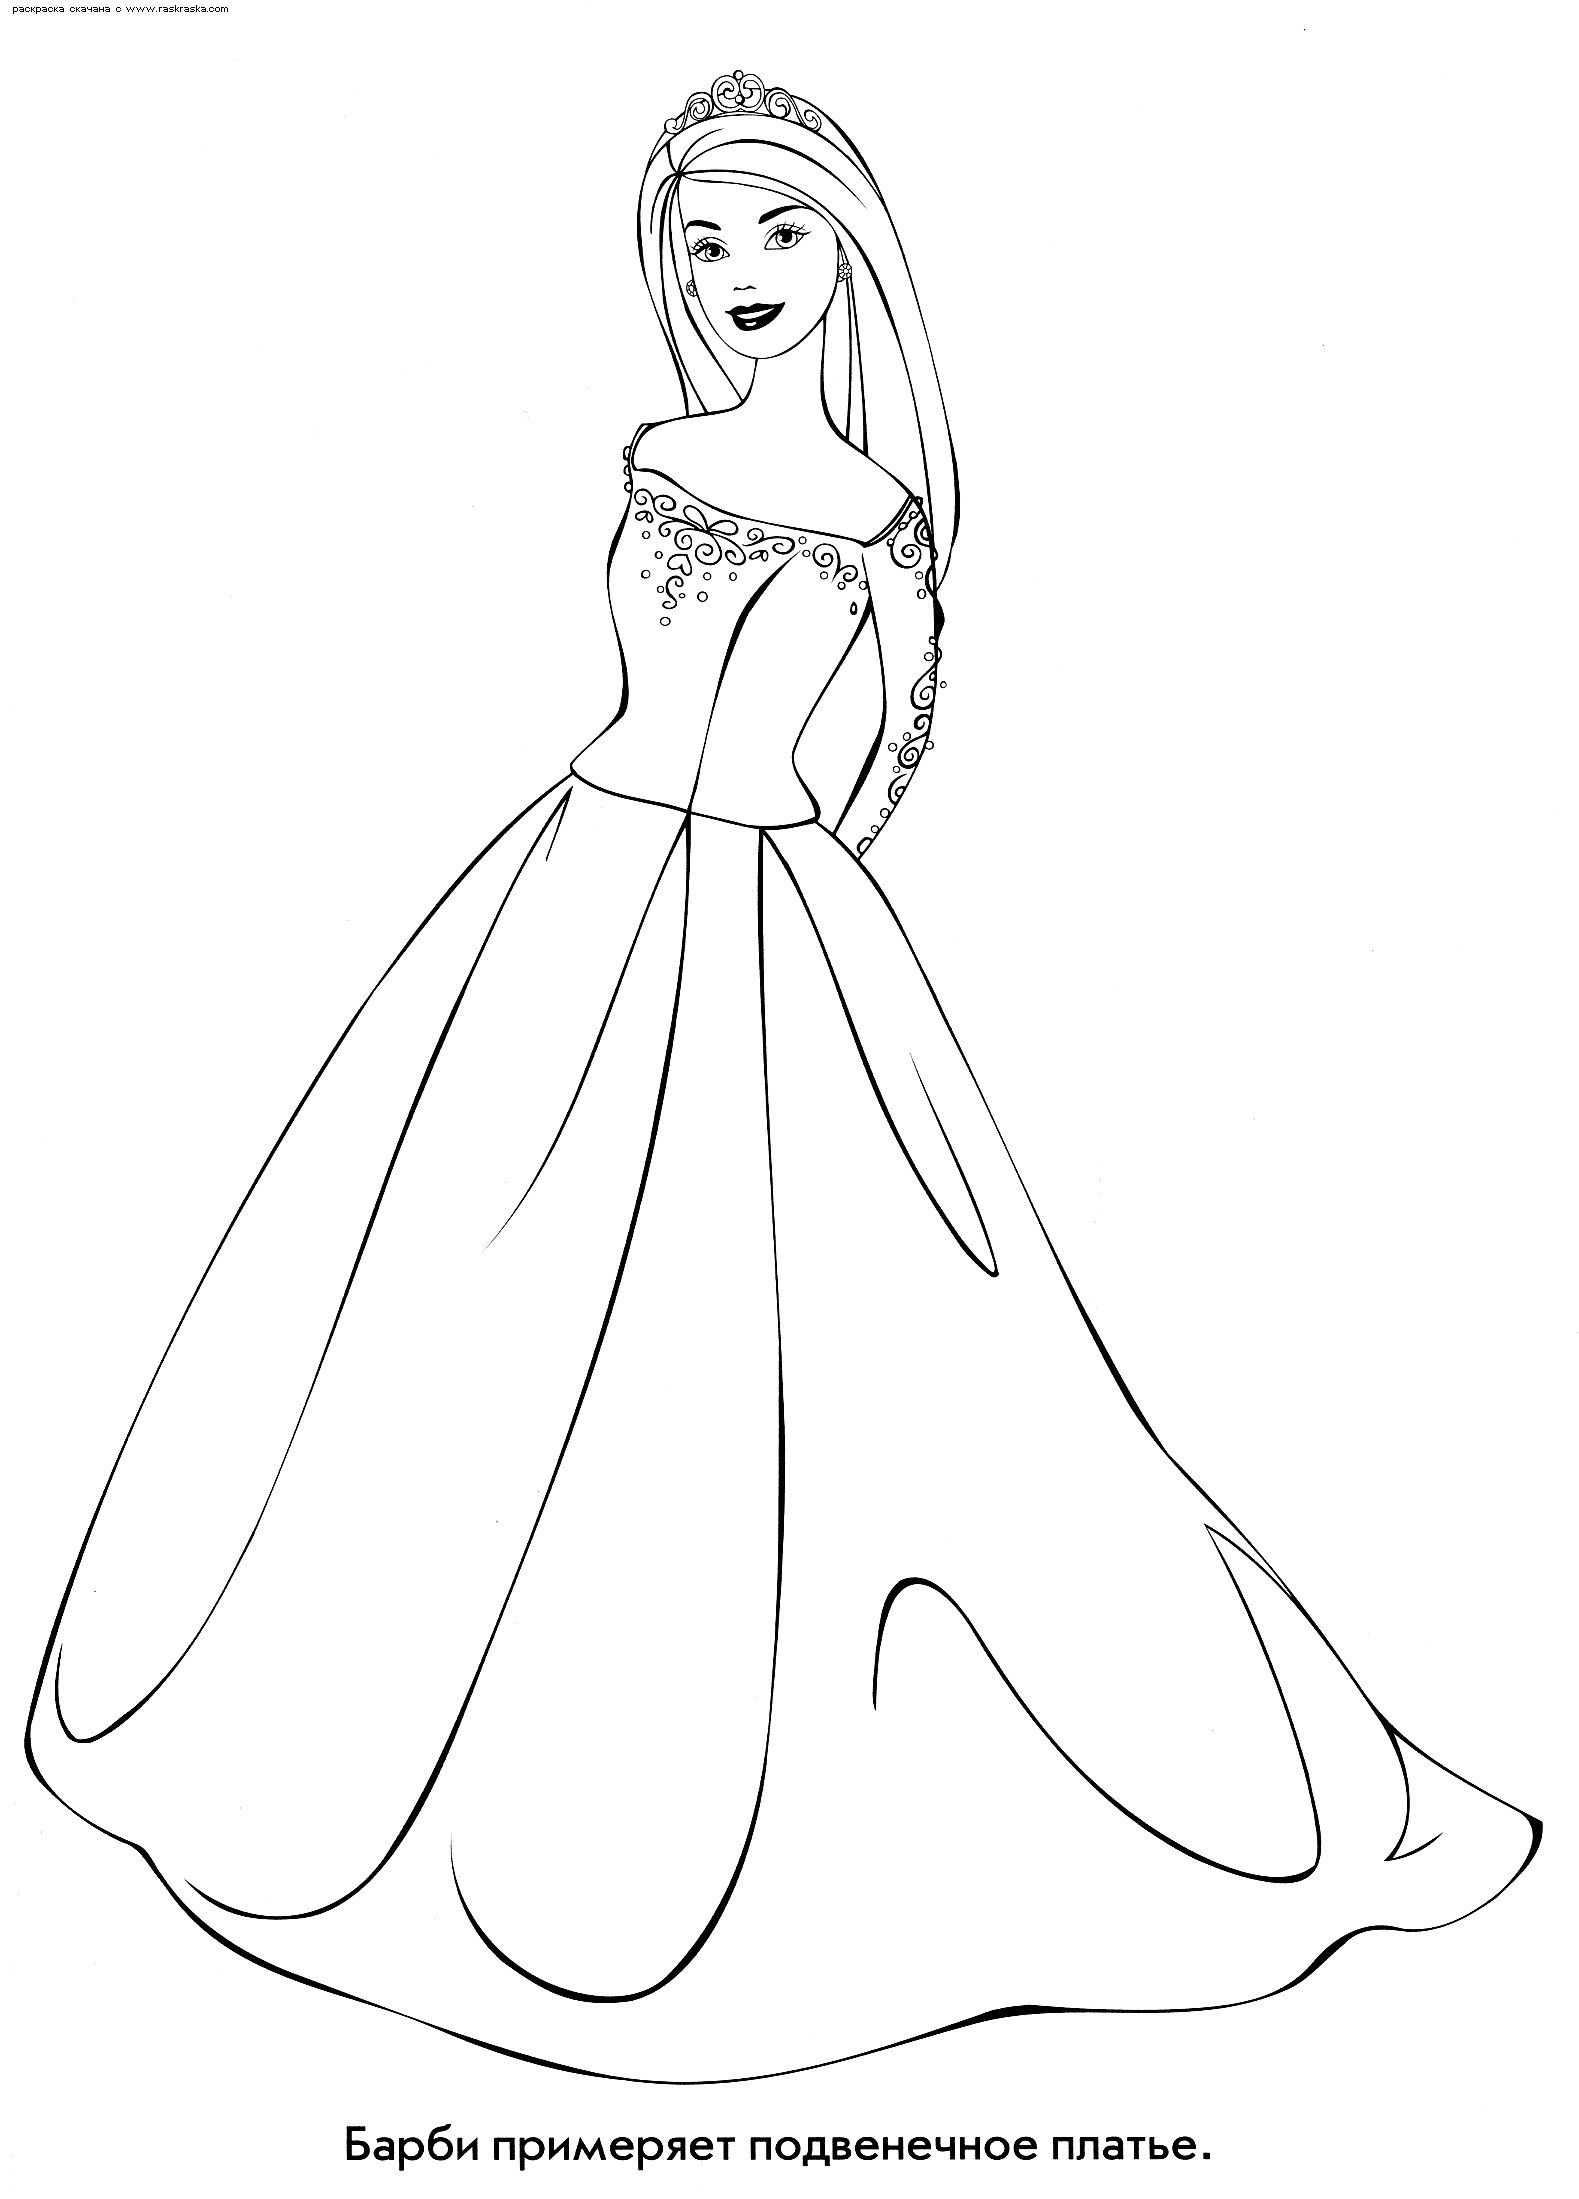 Barbie Coloring Page 59 Wedding Coloring Pages Barbie Coloring Pages Barbie Coloring